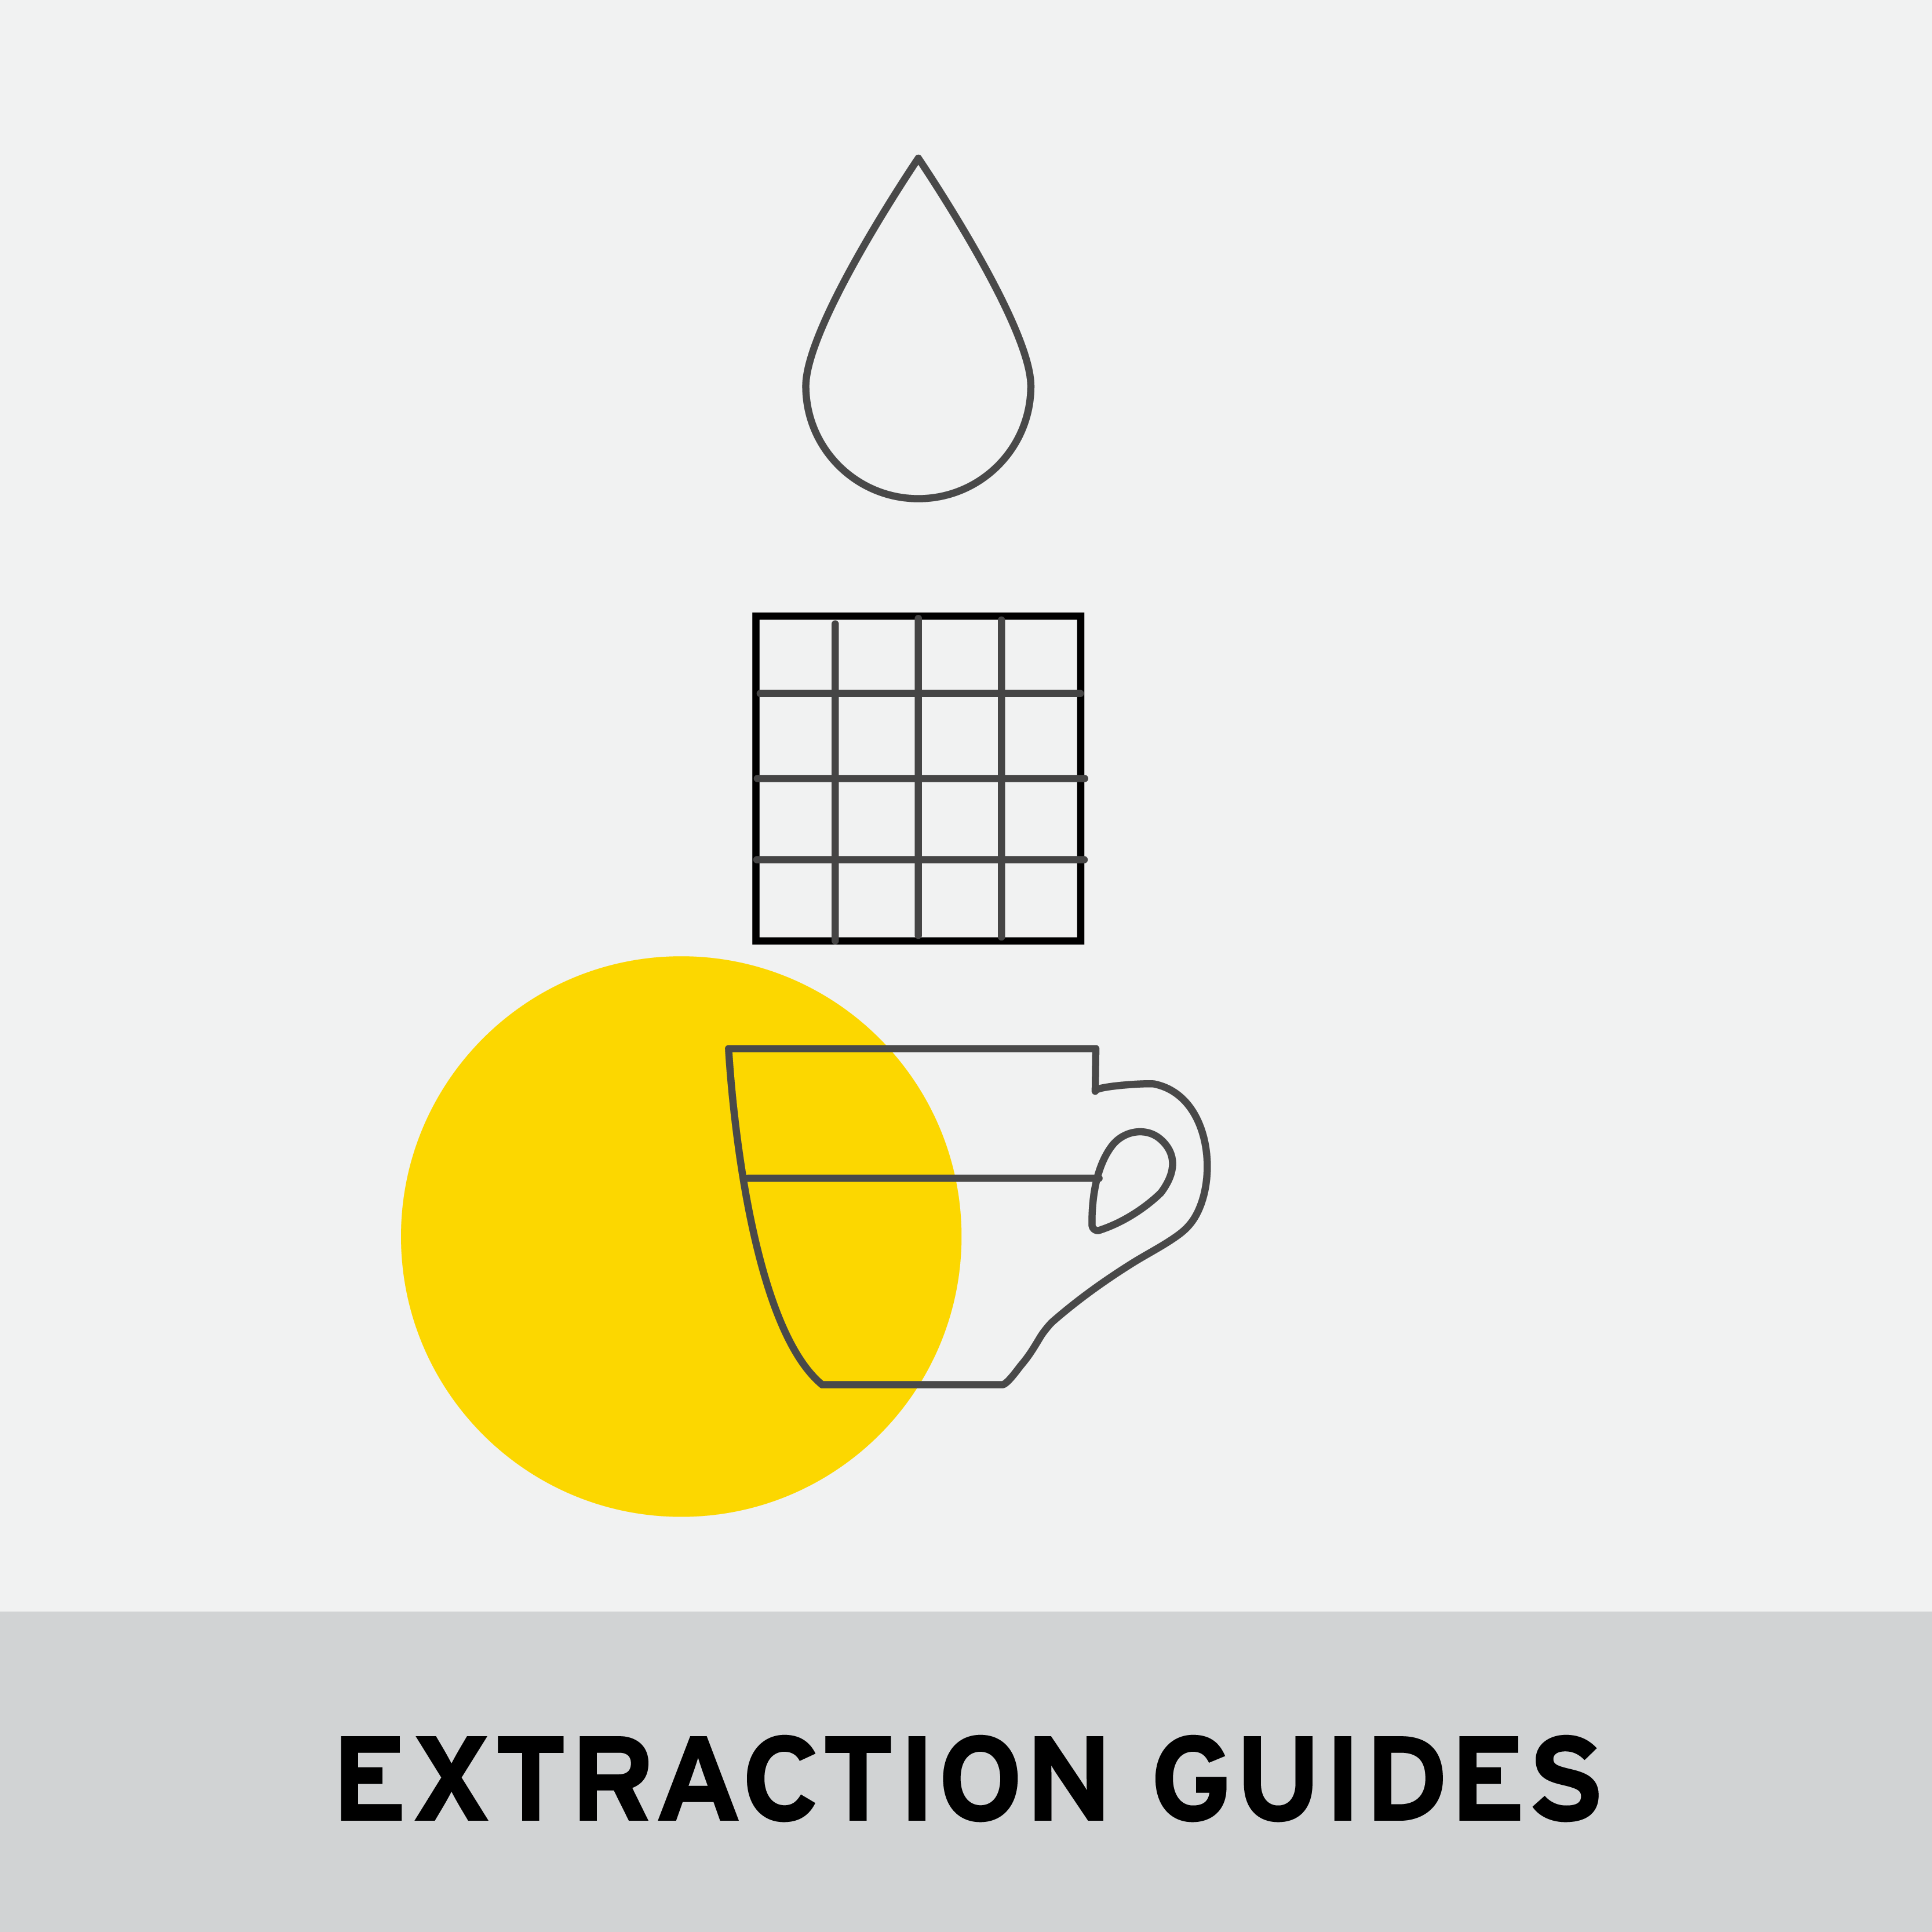 EXTRACTION GUIDES